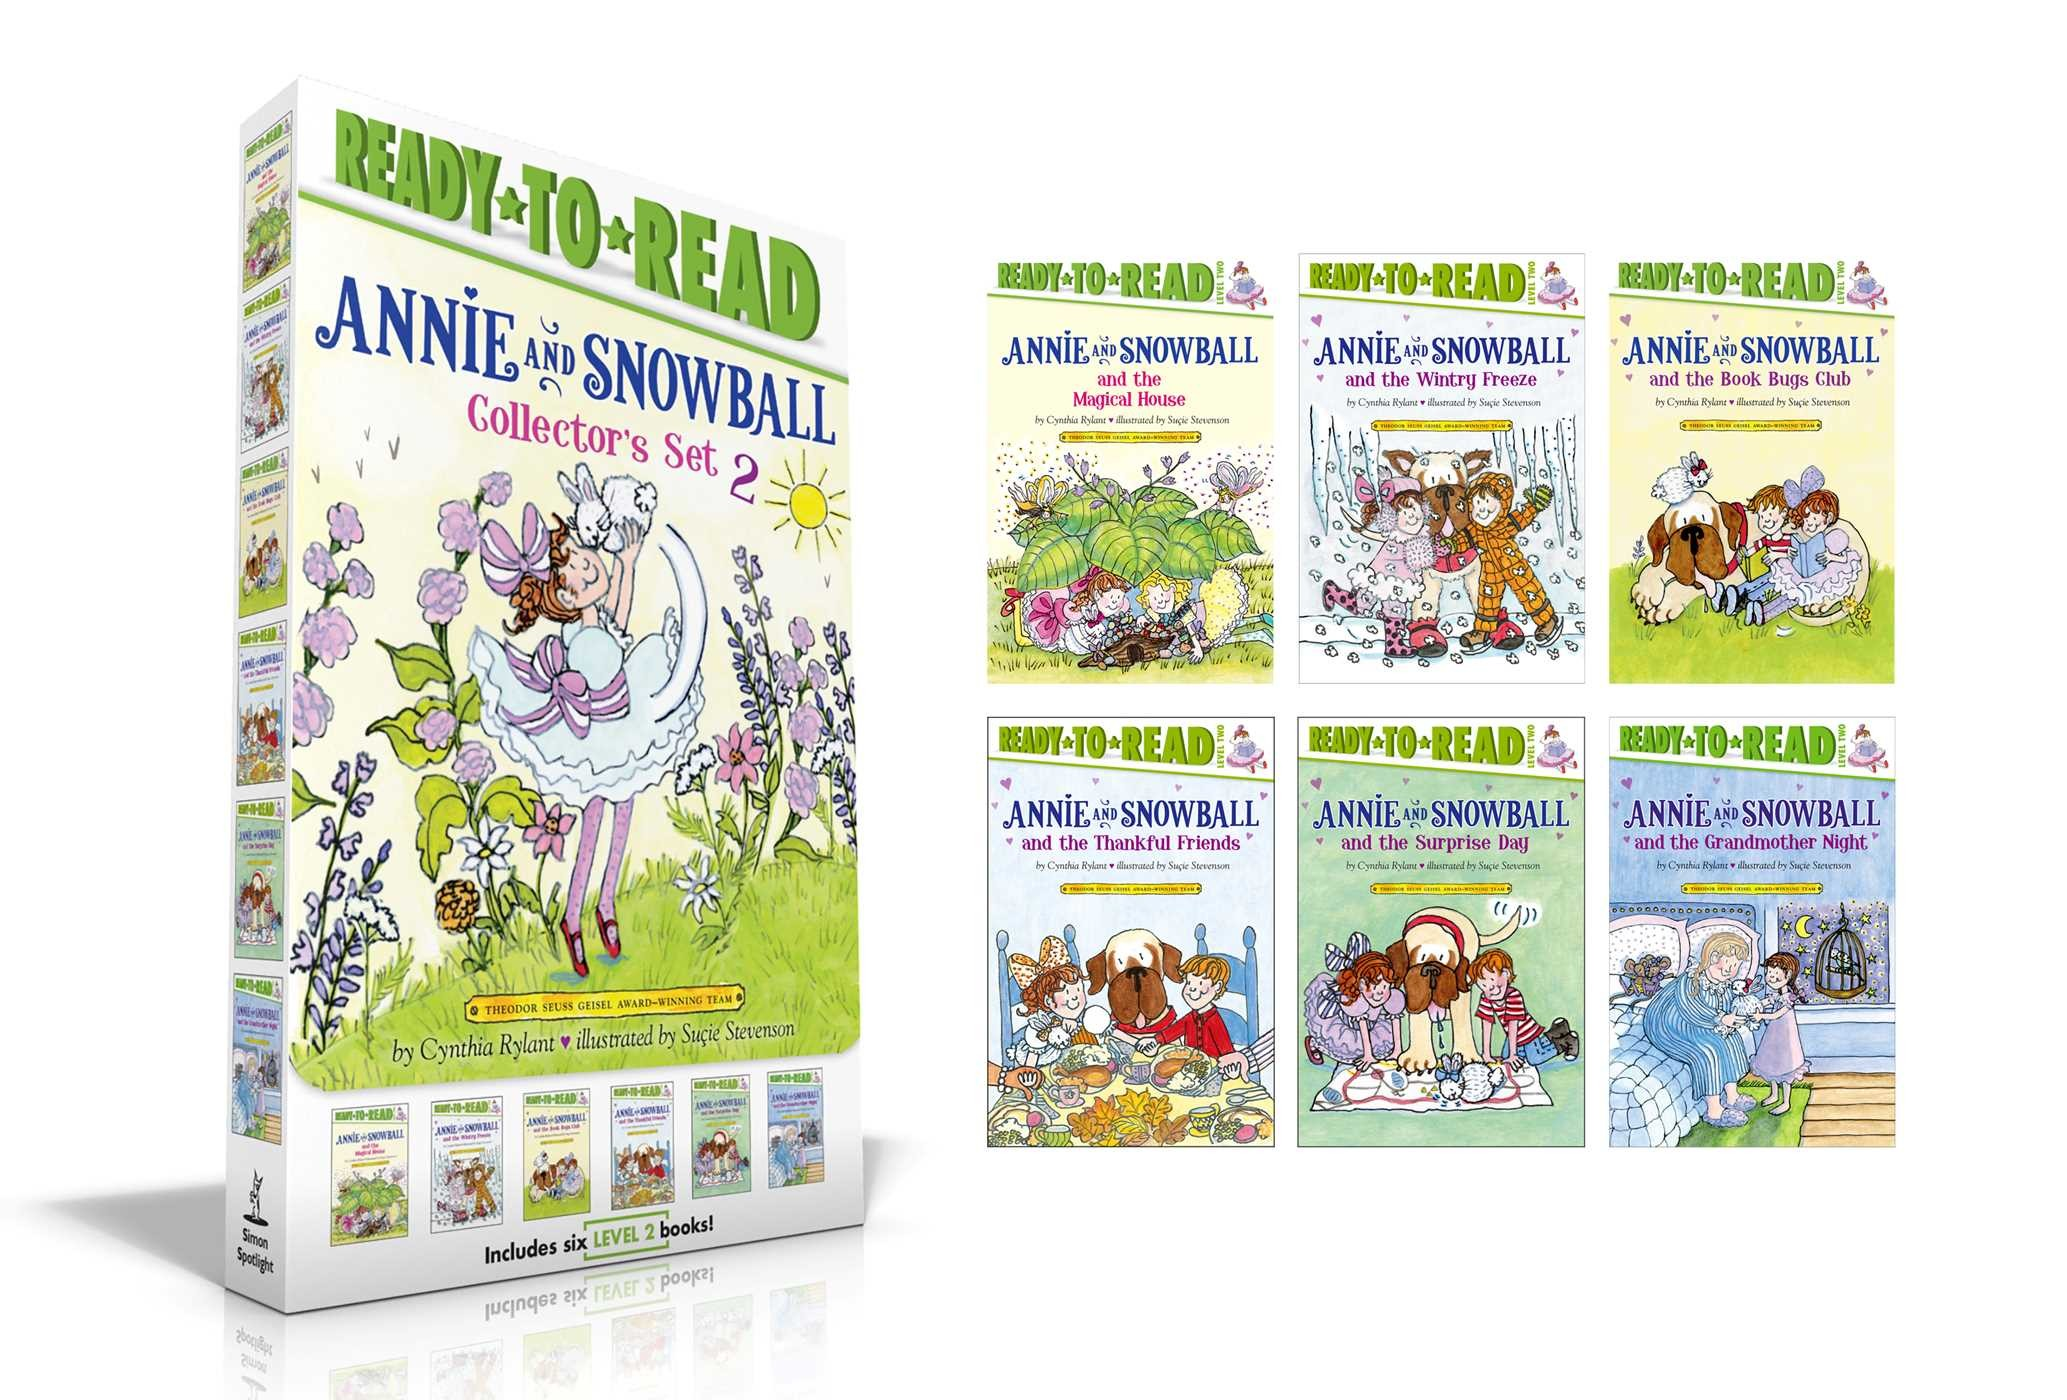 Annie and snowball collectors set 2 9781534438101.in01